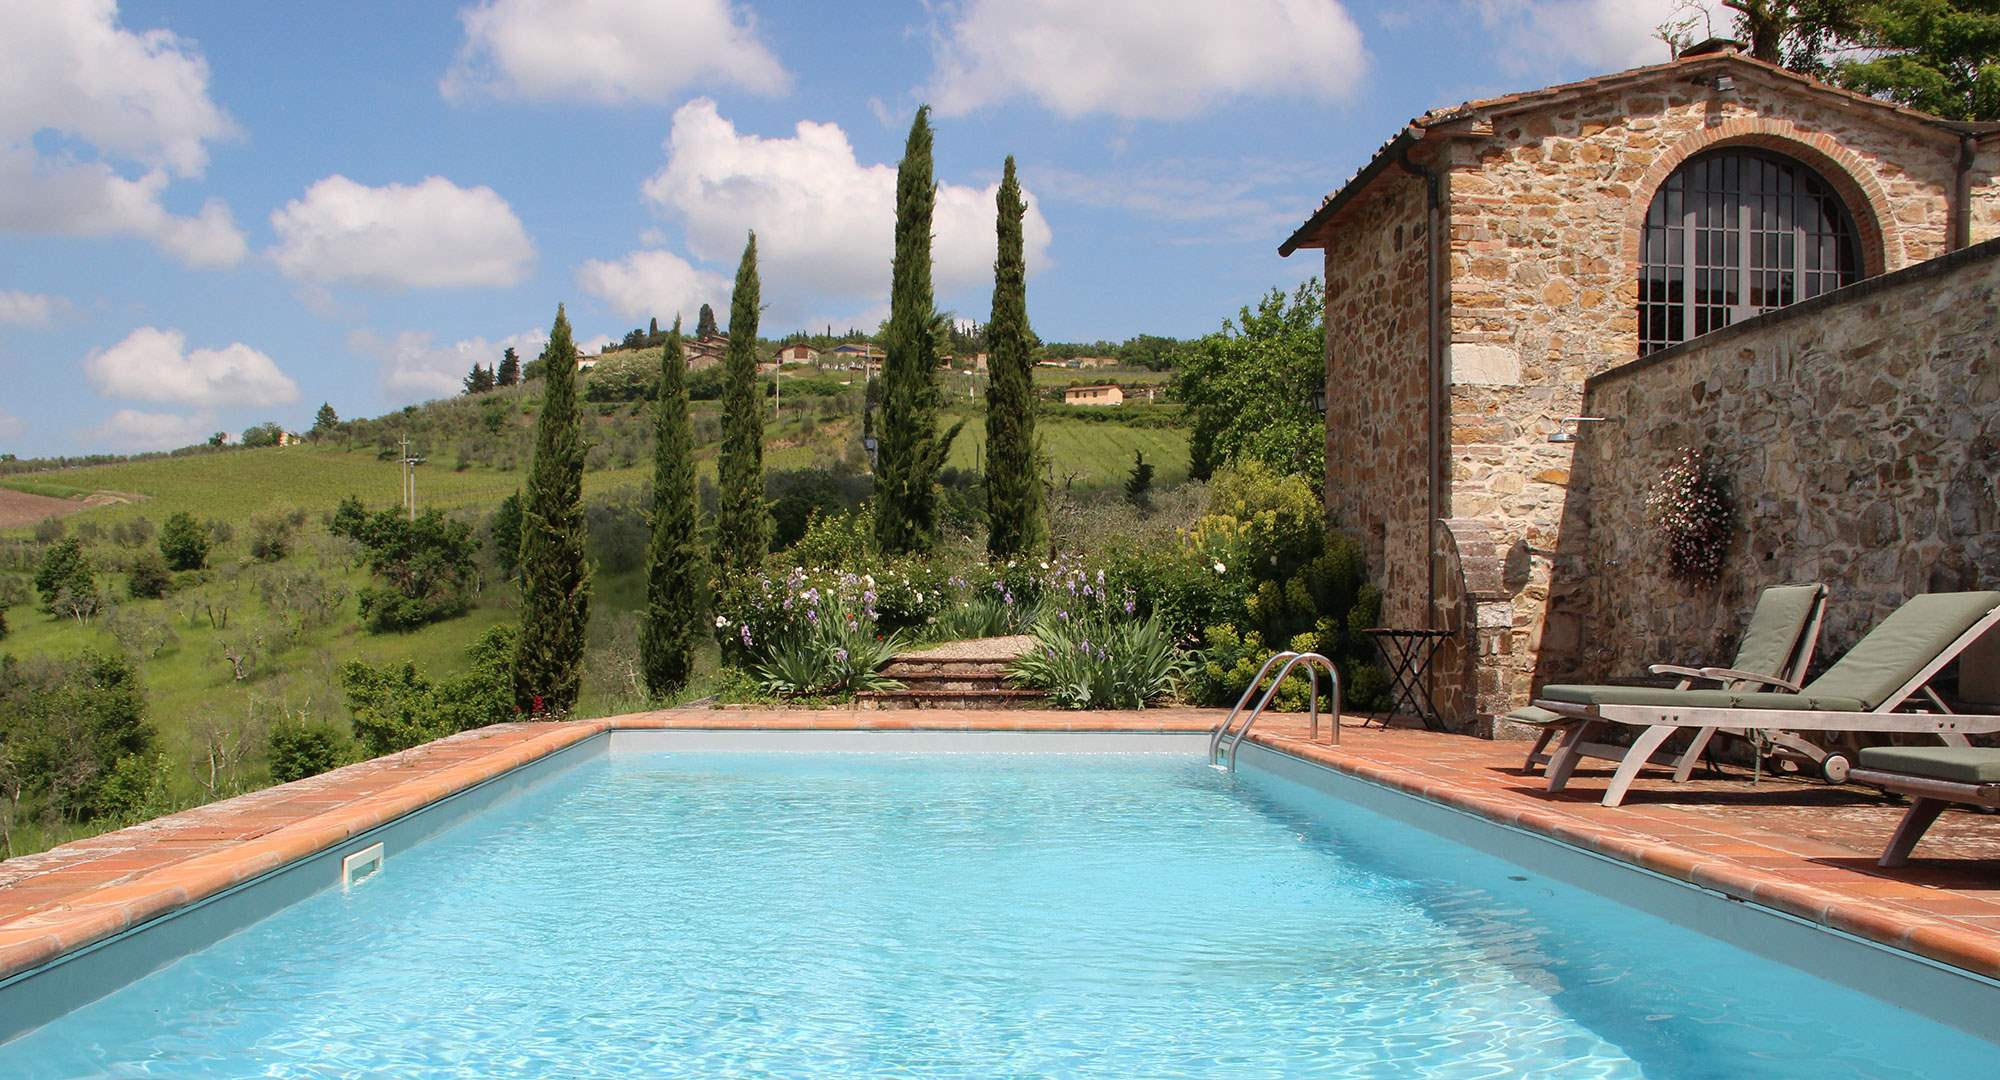 Villa Del Vino, 5 bedroom villa in Chianti & Countryside, Tuscany Photo #2